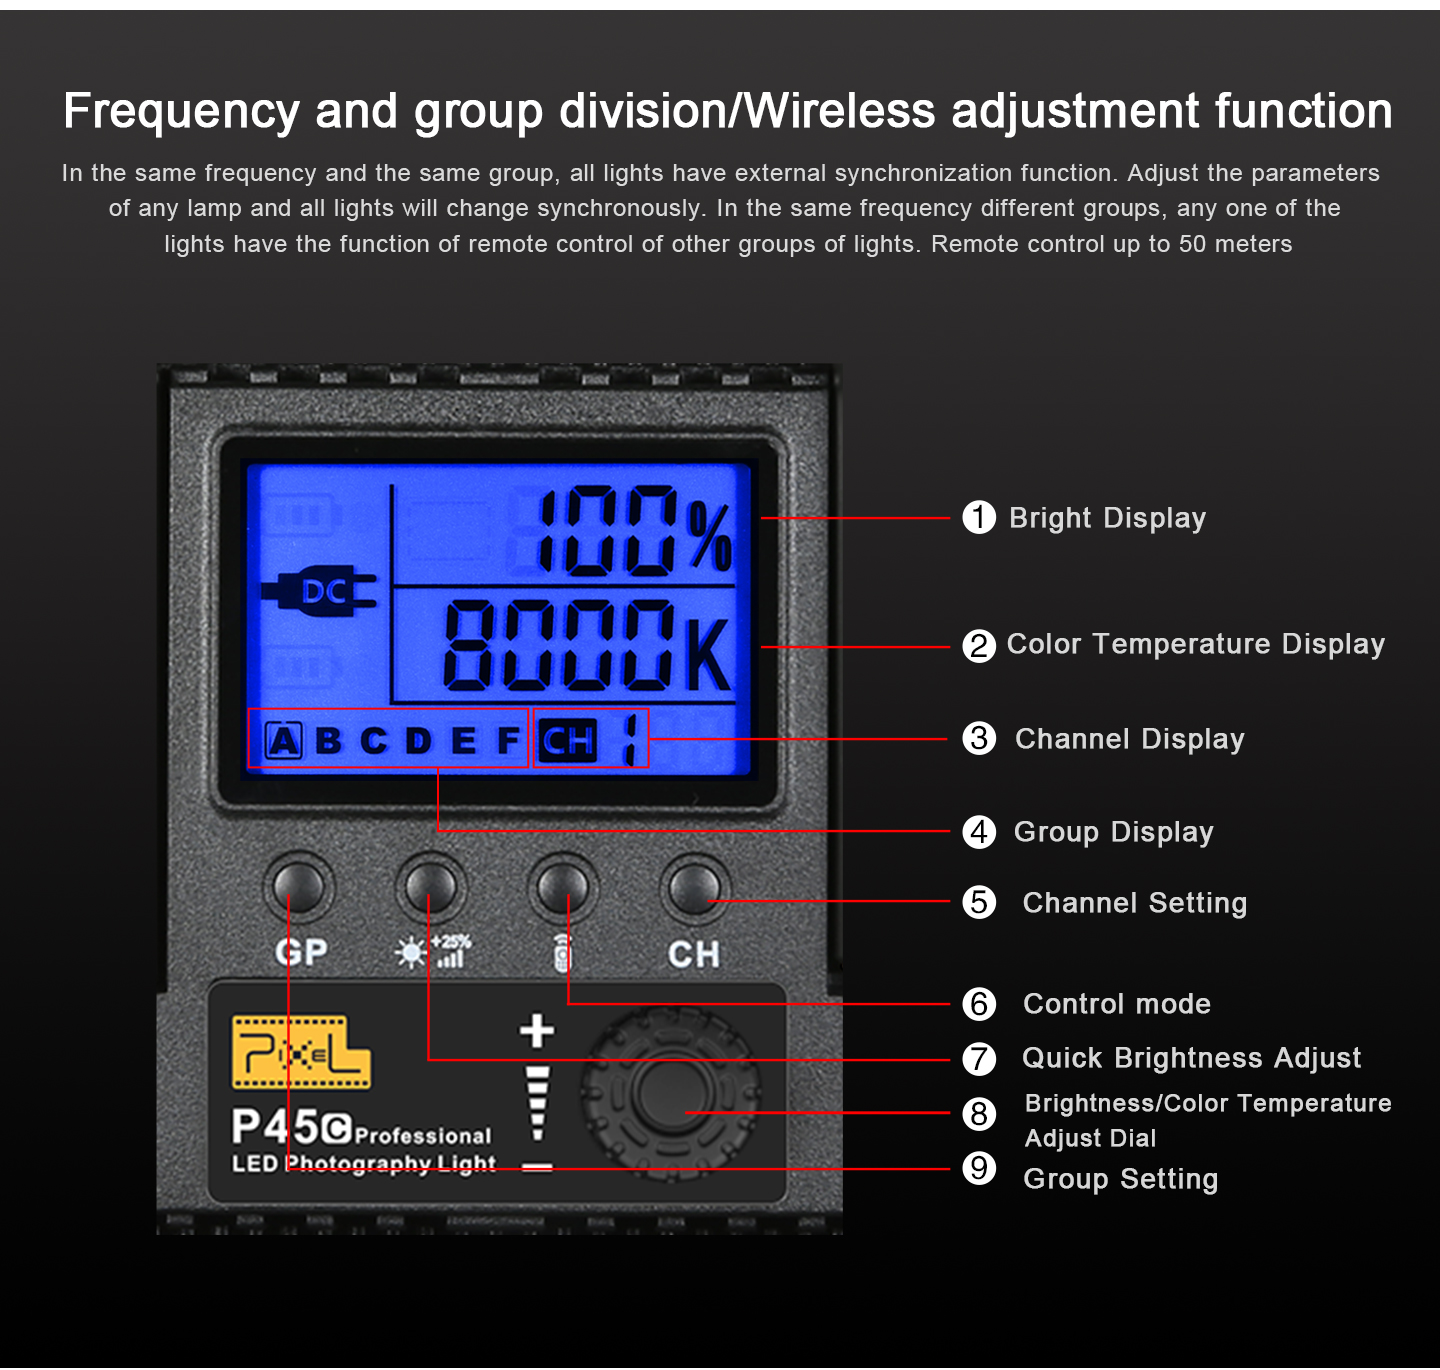 Frequency and group division/Wireless adjustment function